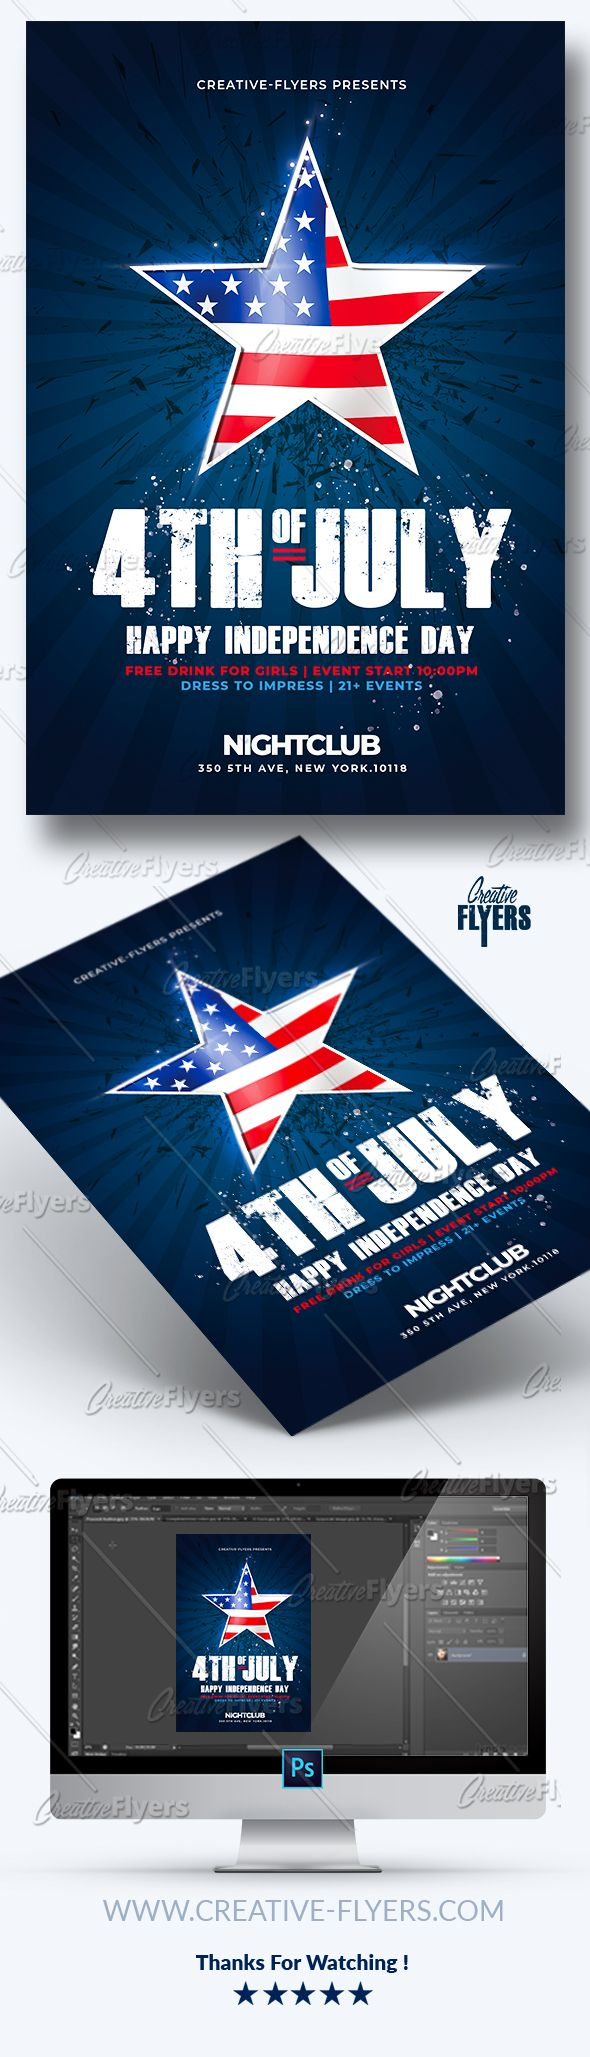 creative 4th of july flyer template to promote your independence day event with these flyer psd photoshop templates independenceday independence day